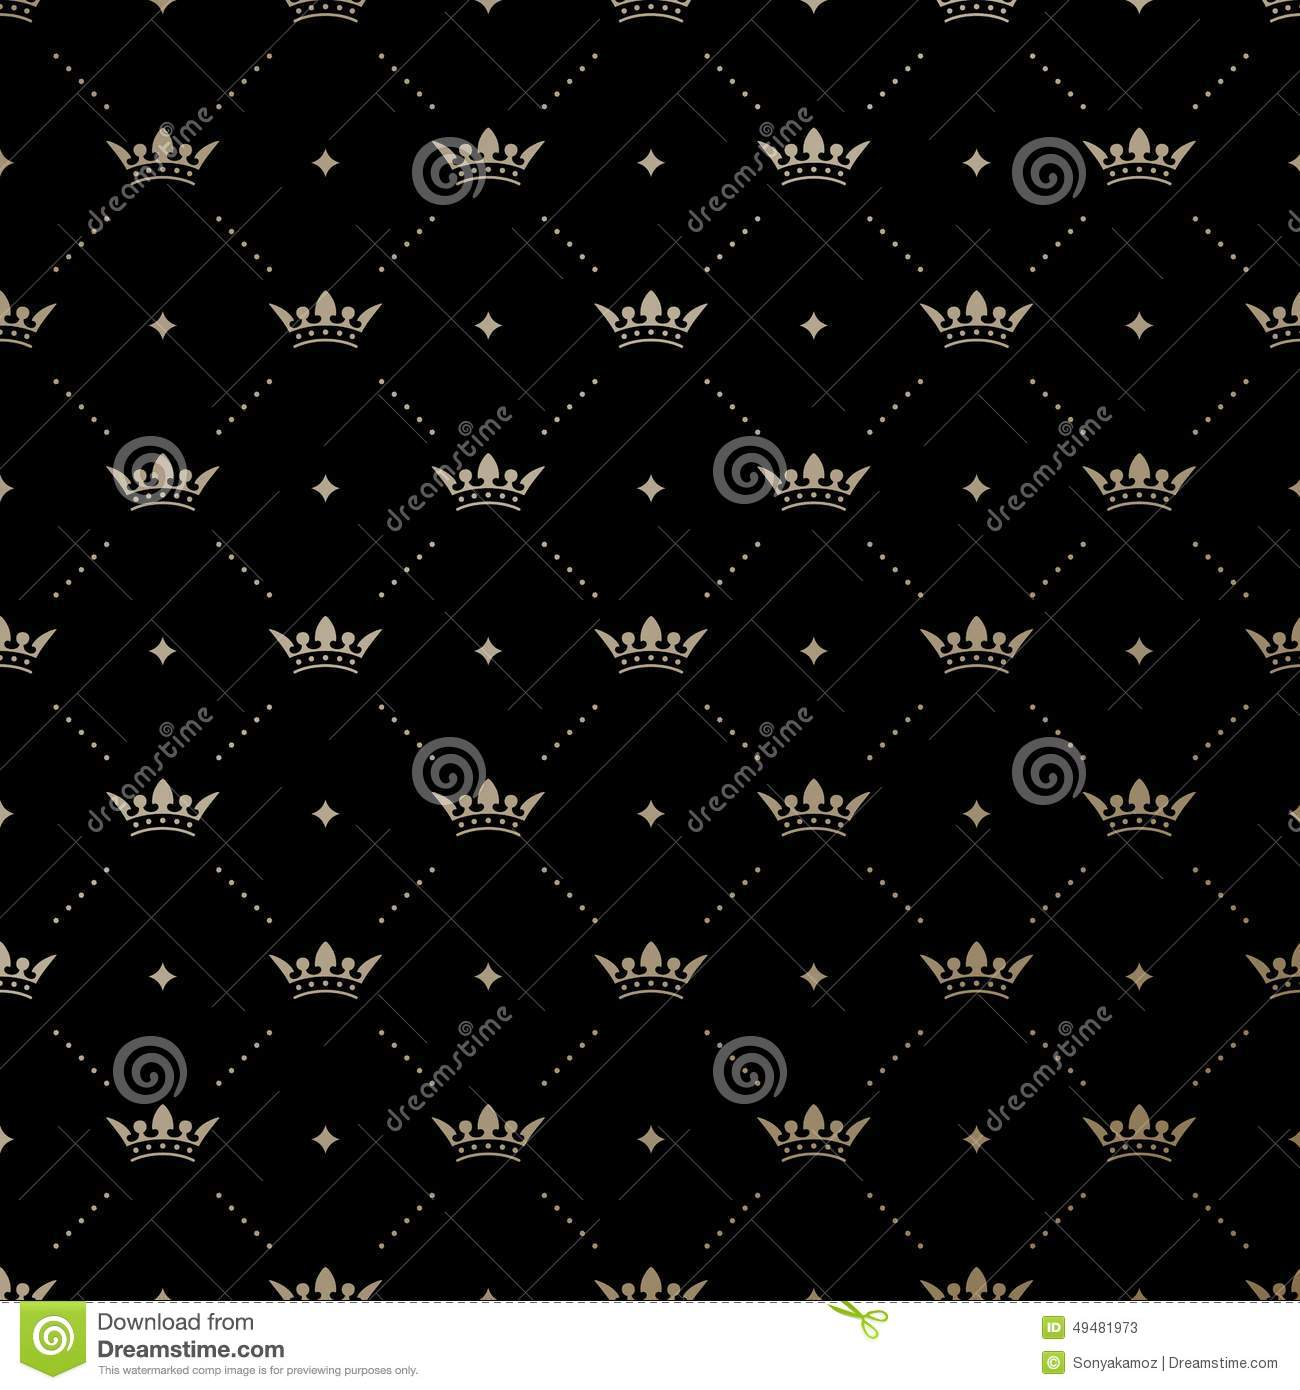 Gold crown background - photo#24